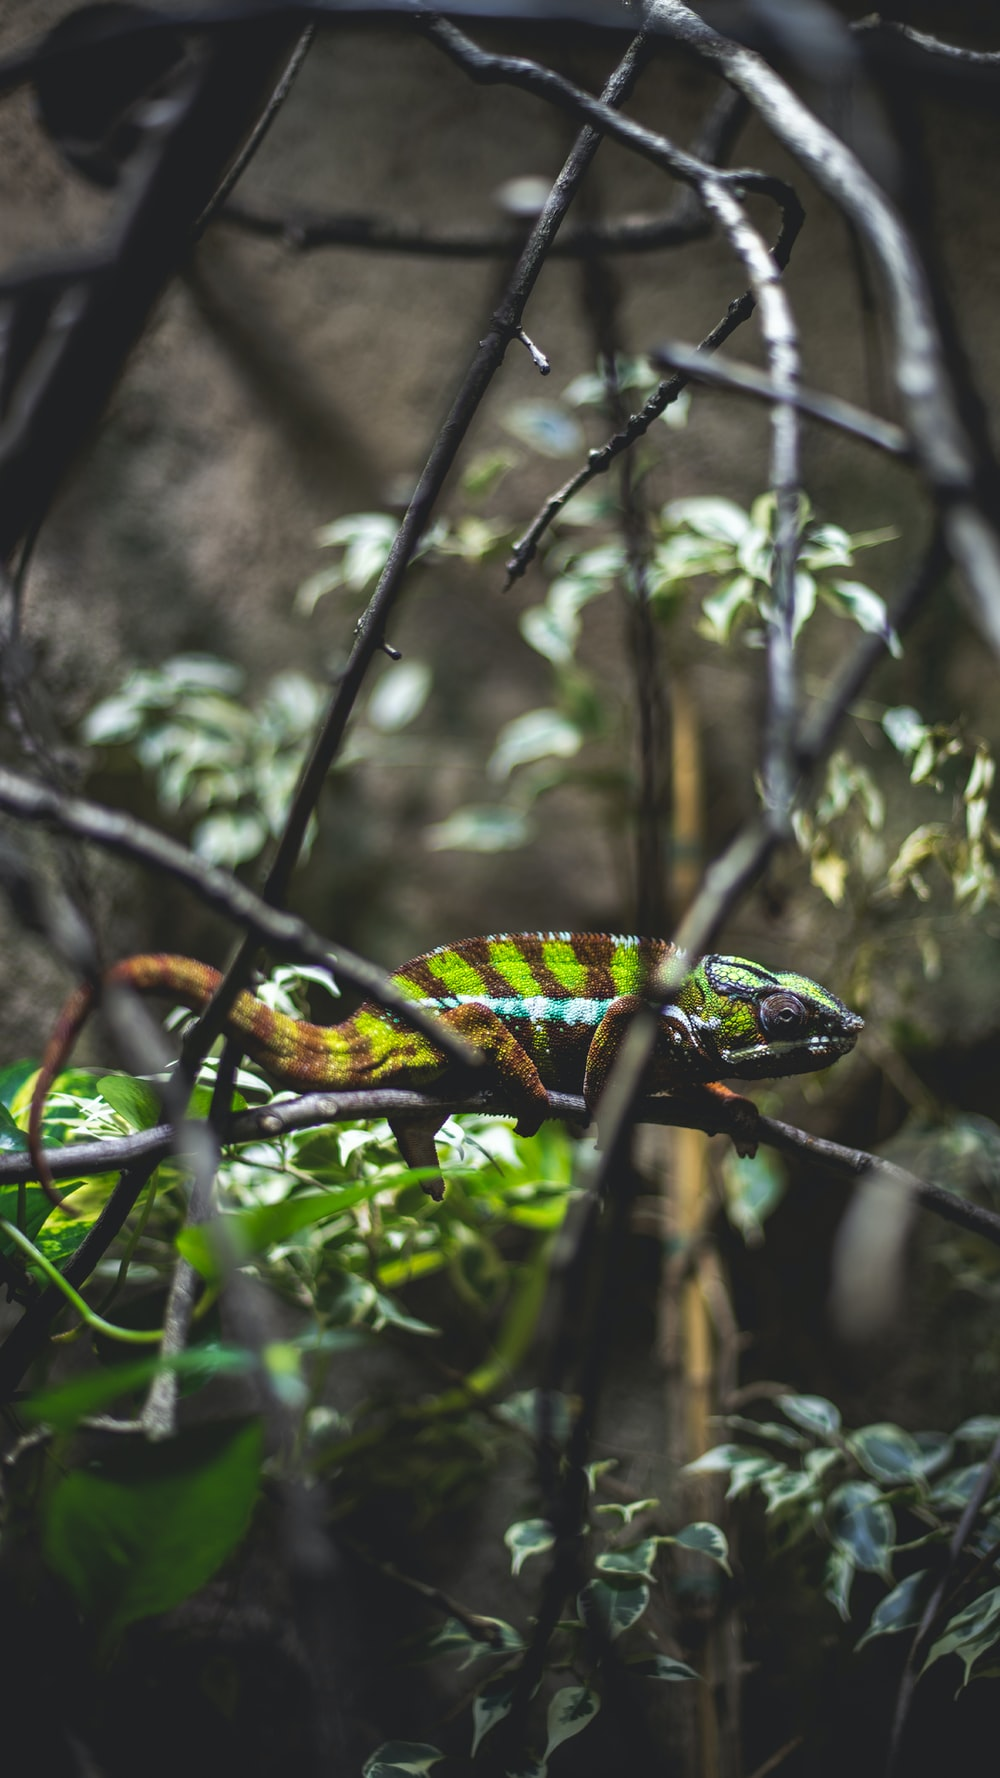 green and brown chameleon on tree branch